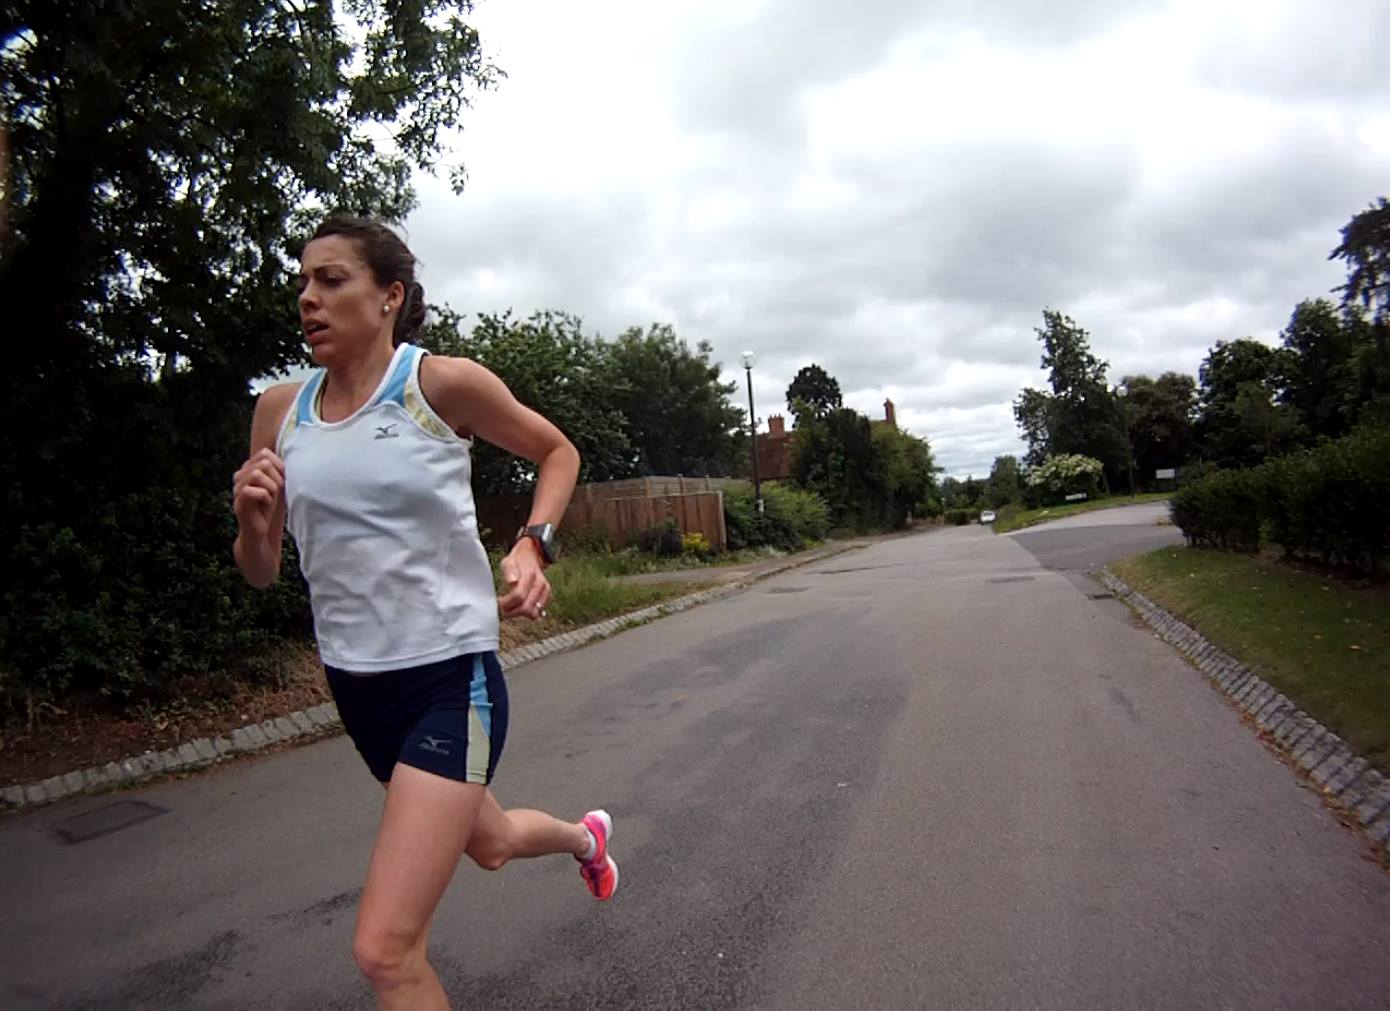 Emily training in Milton Keynes, England.